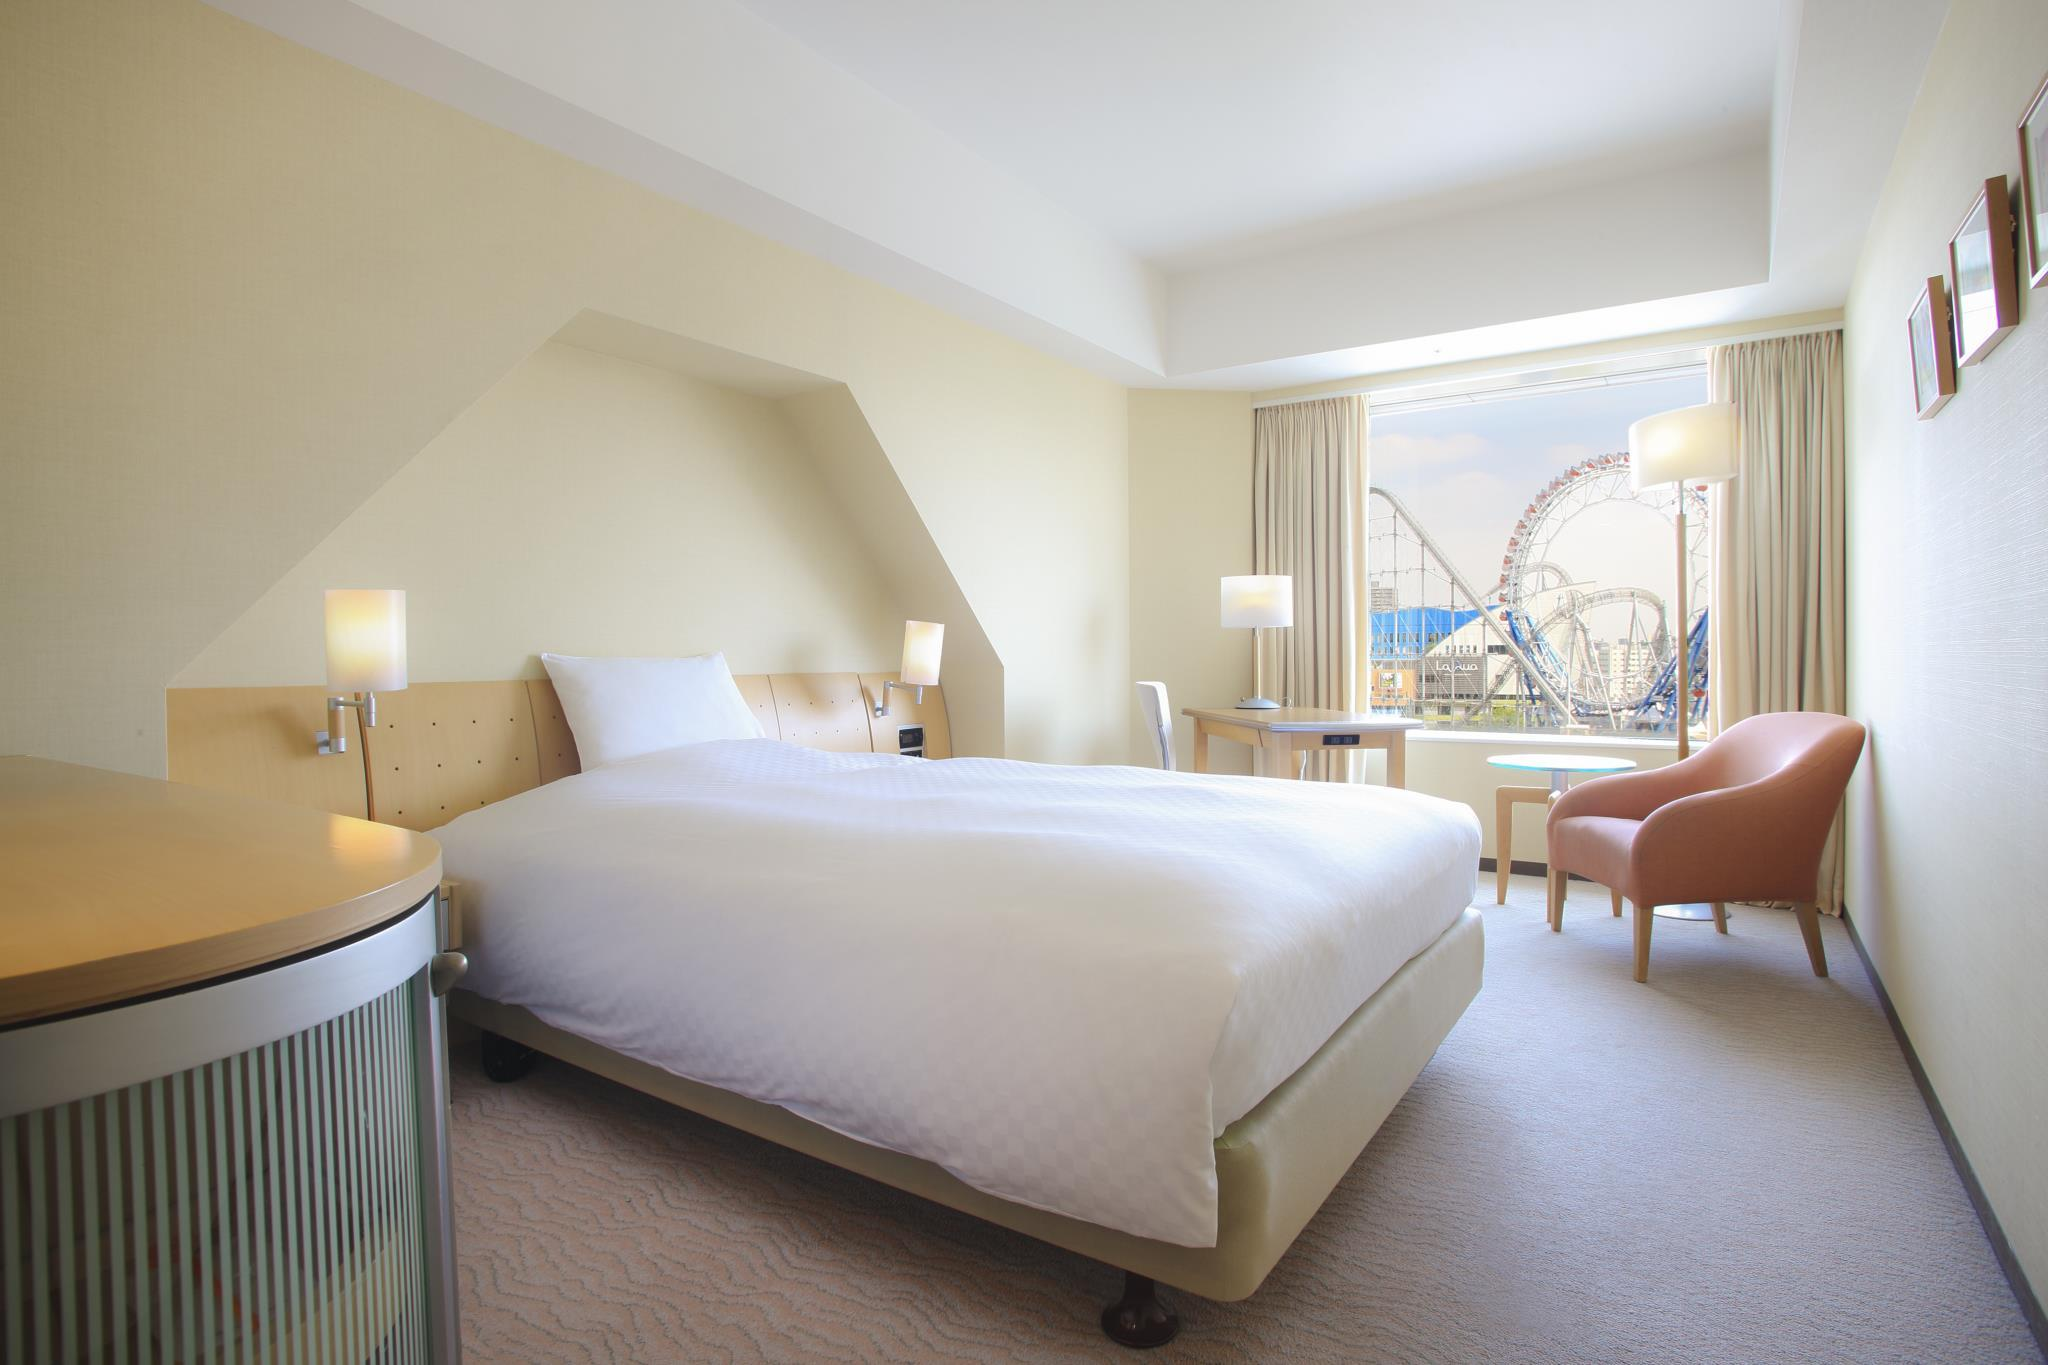 Best price on tokyo dome hotel in tokyo reviews for Japan dome house cost